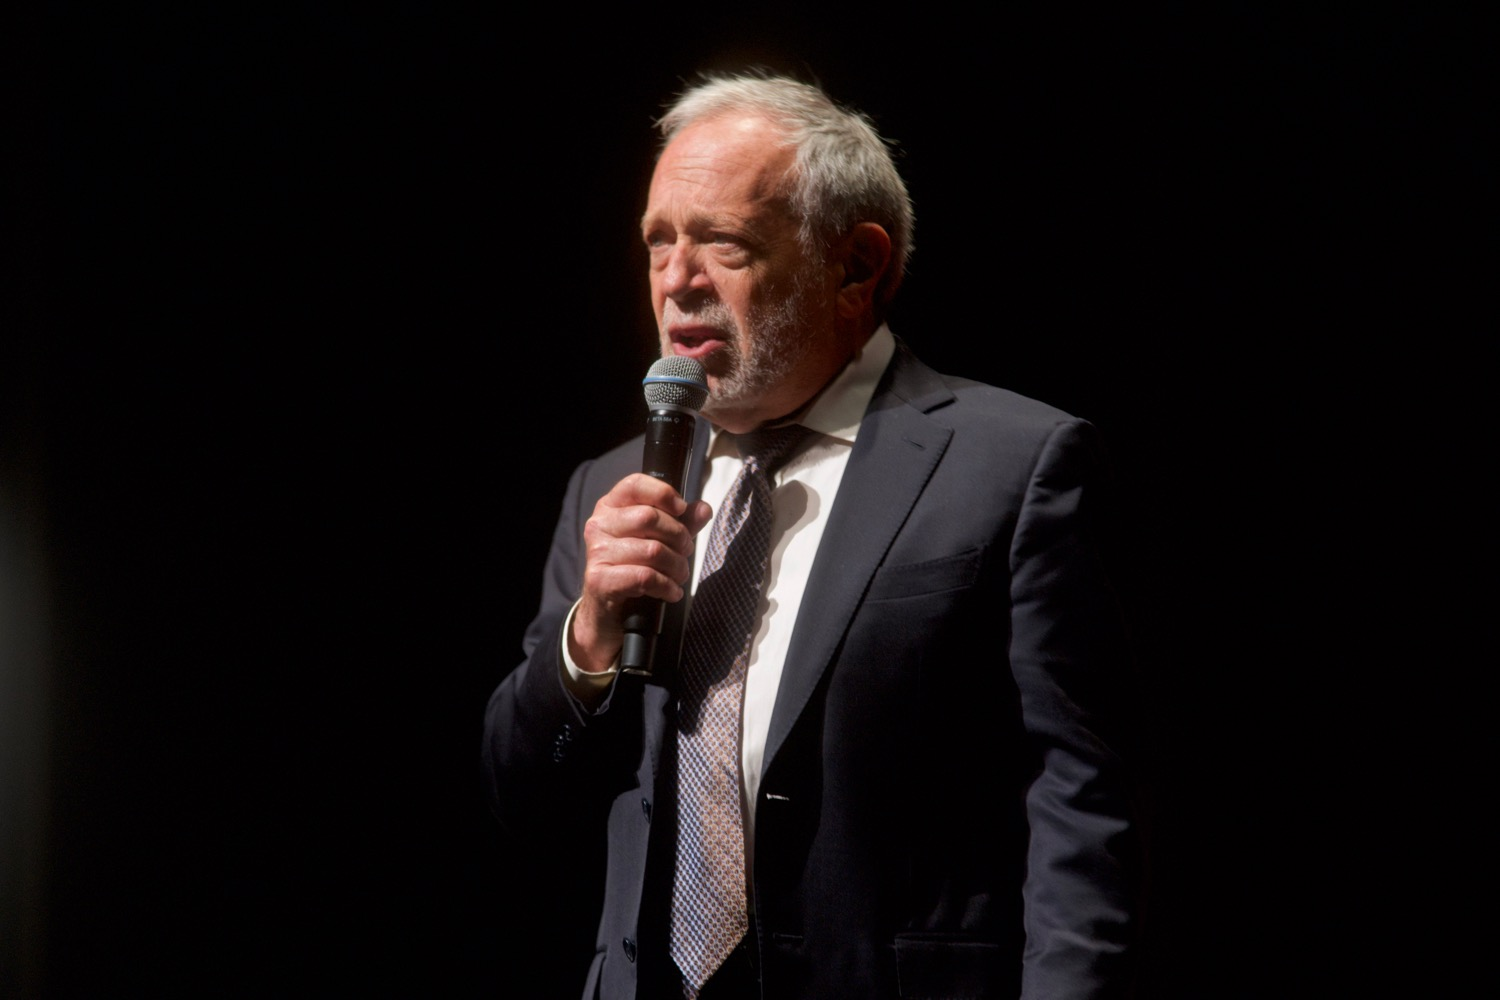 Robert Reich holding microphone